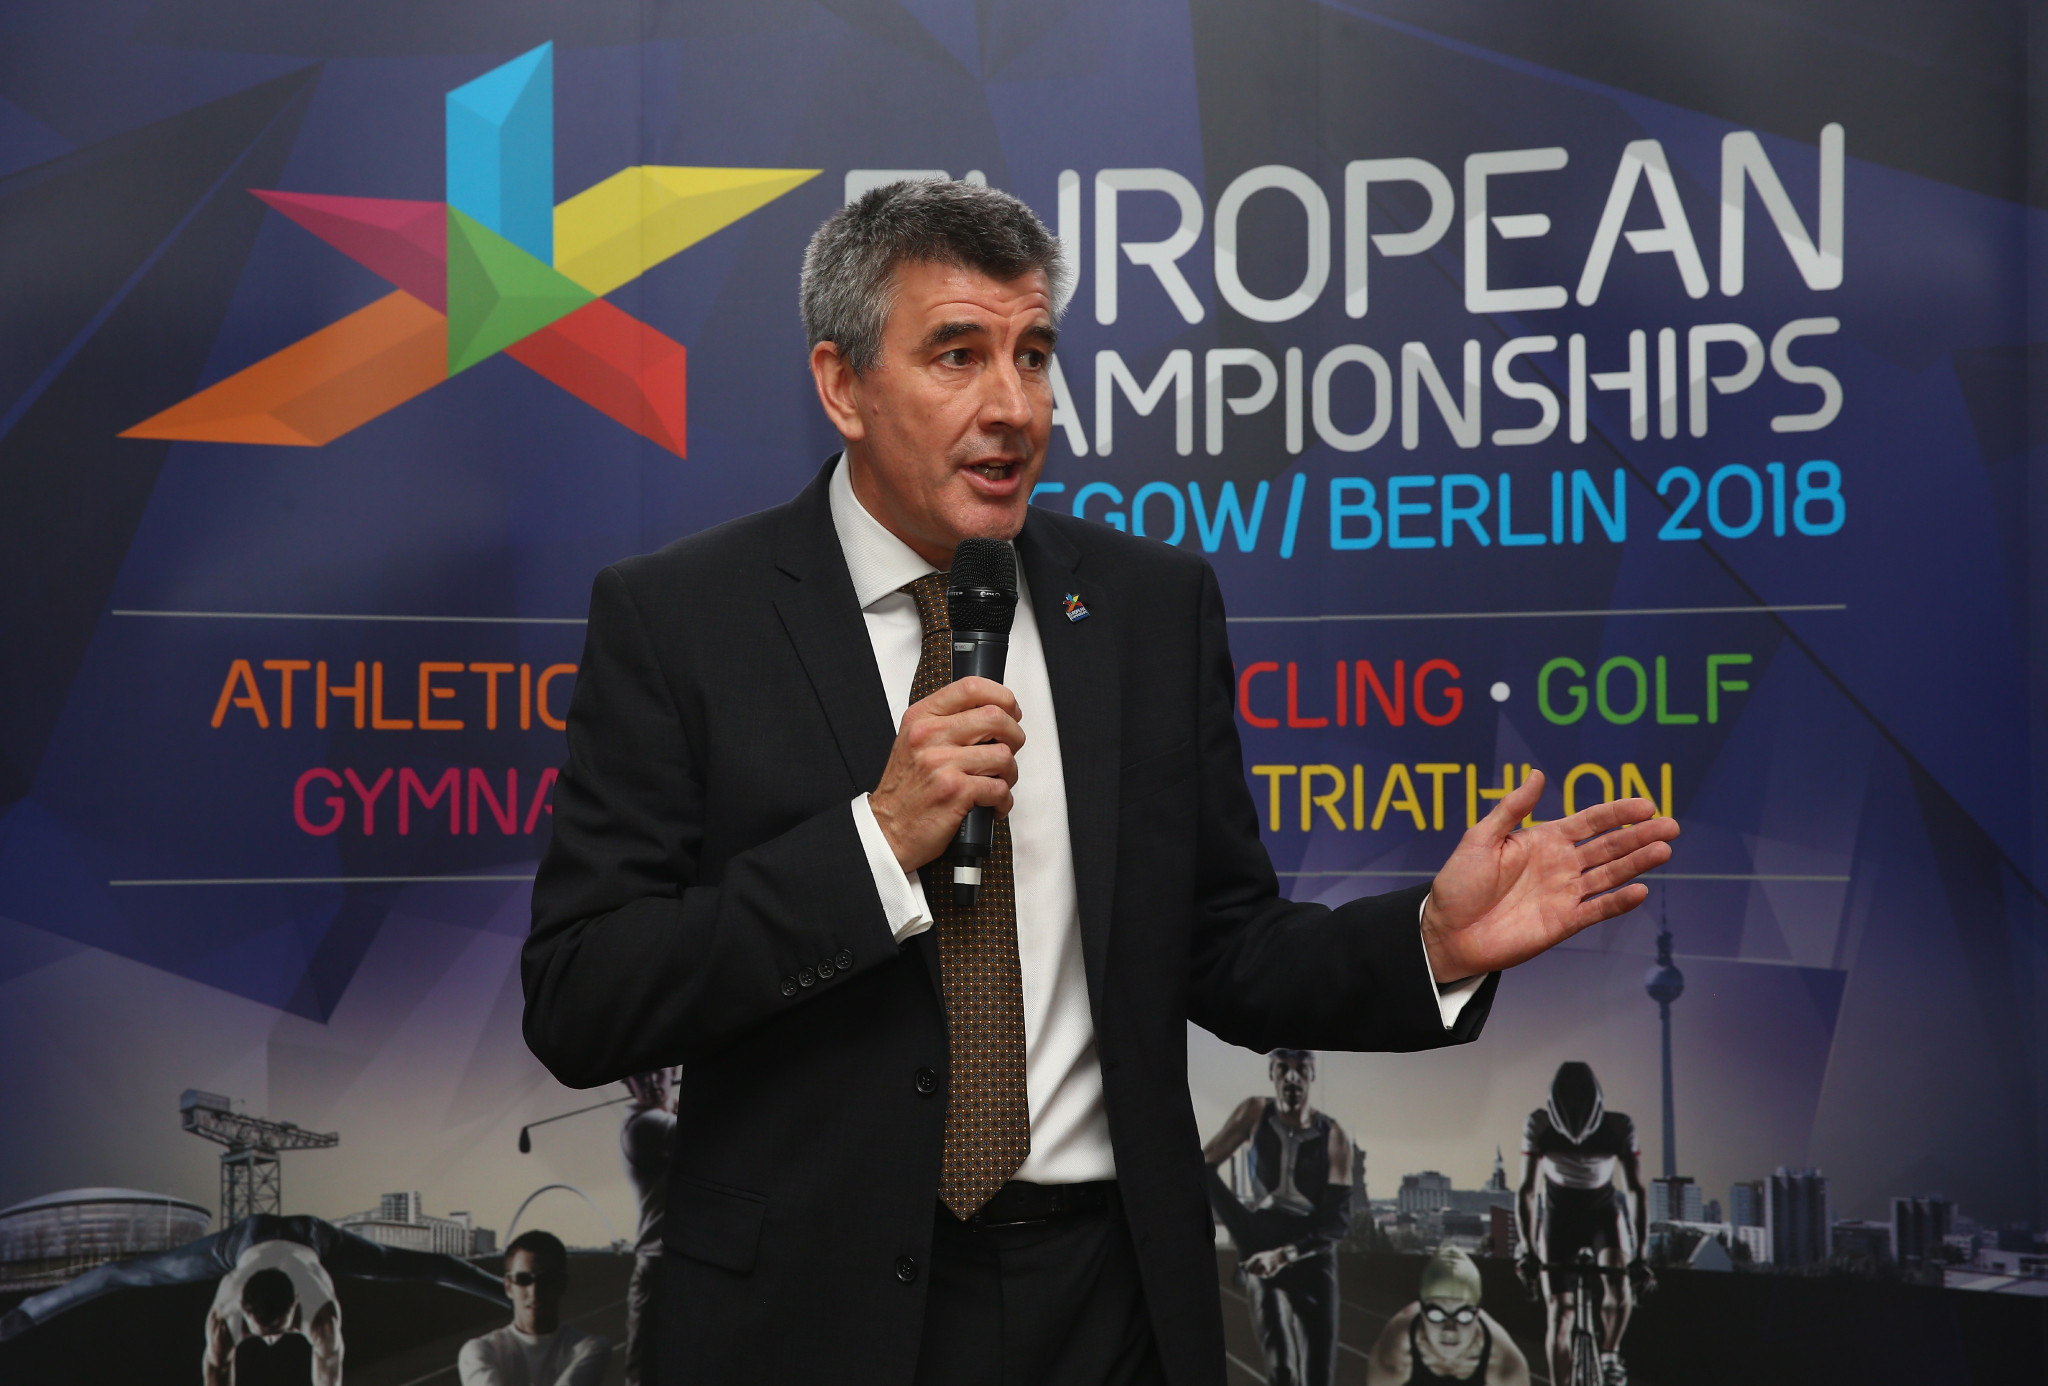 Paul Bristow, co-founder of the multi-sport European Championships, says: